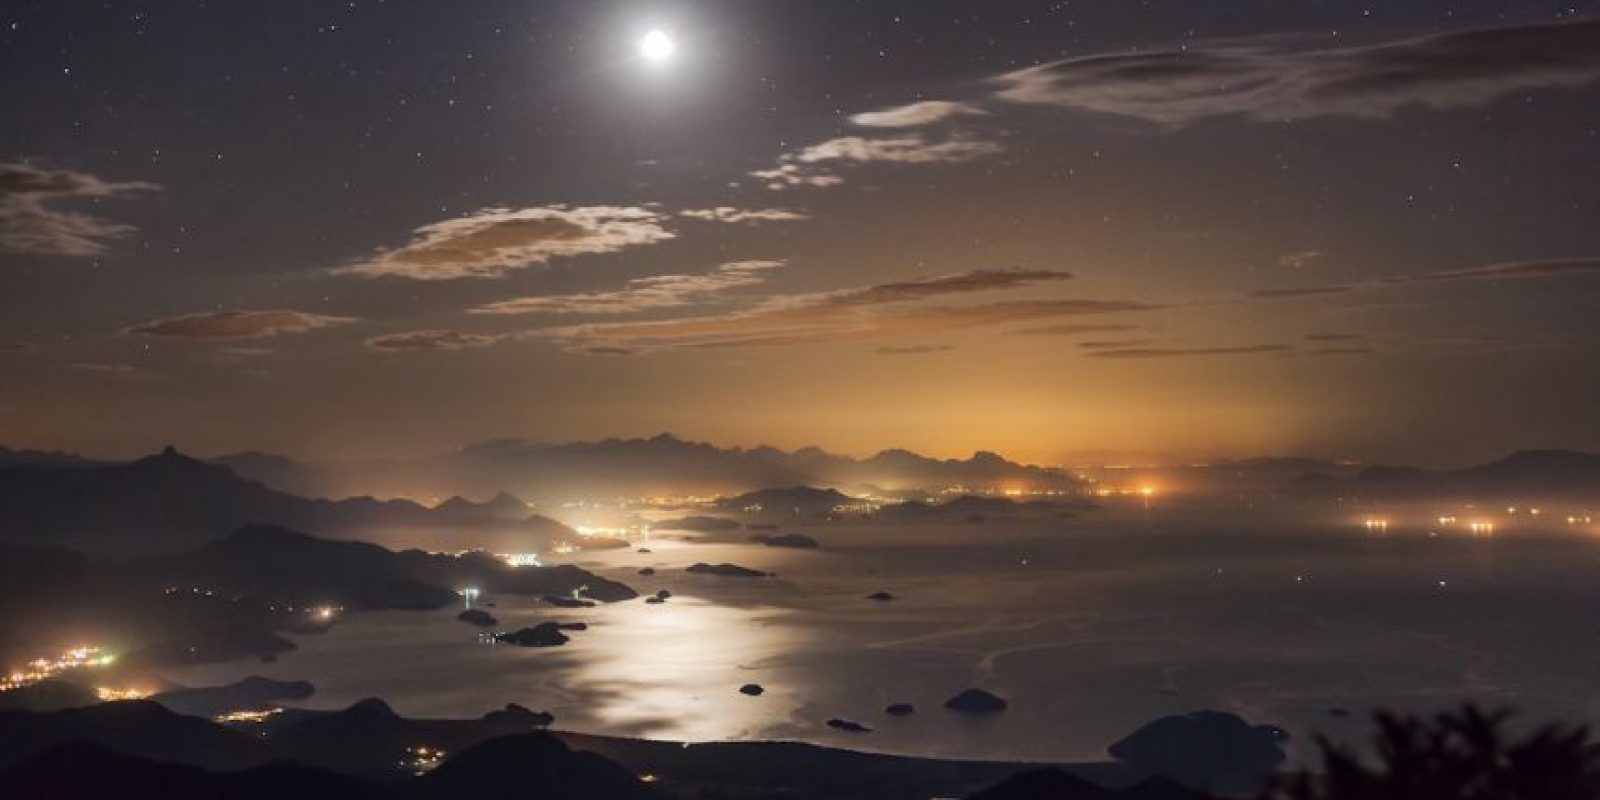 Moon Reflection Foto: Rafael Defavari – Insight Astronomy Photographer of the Year 2016